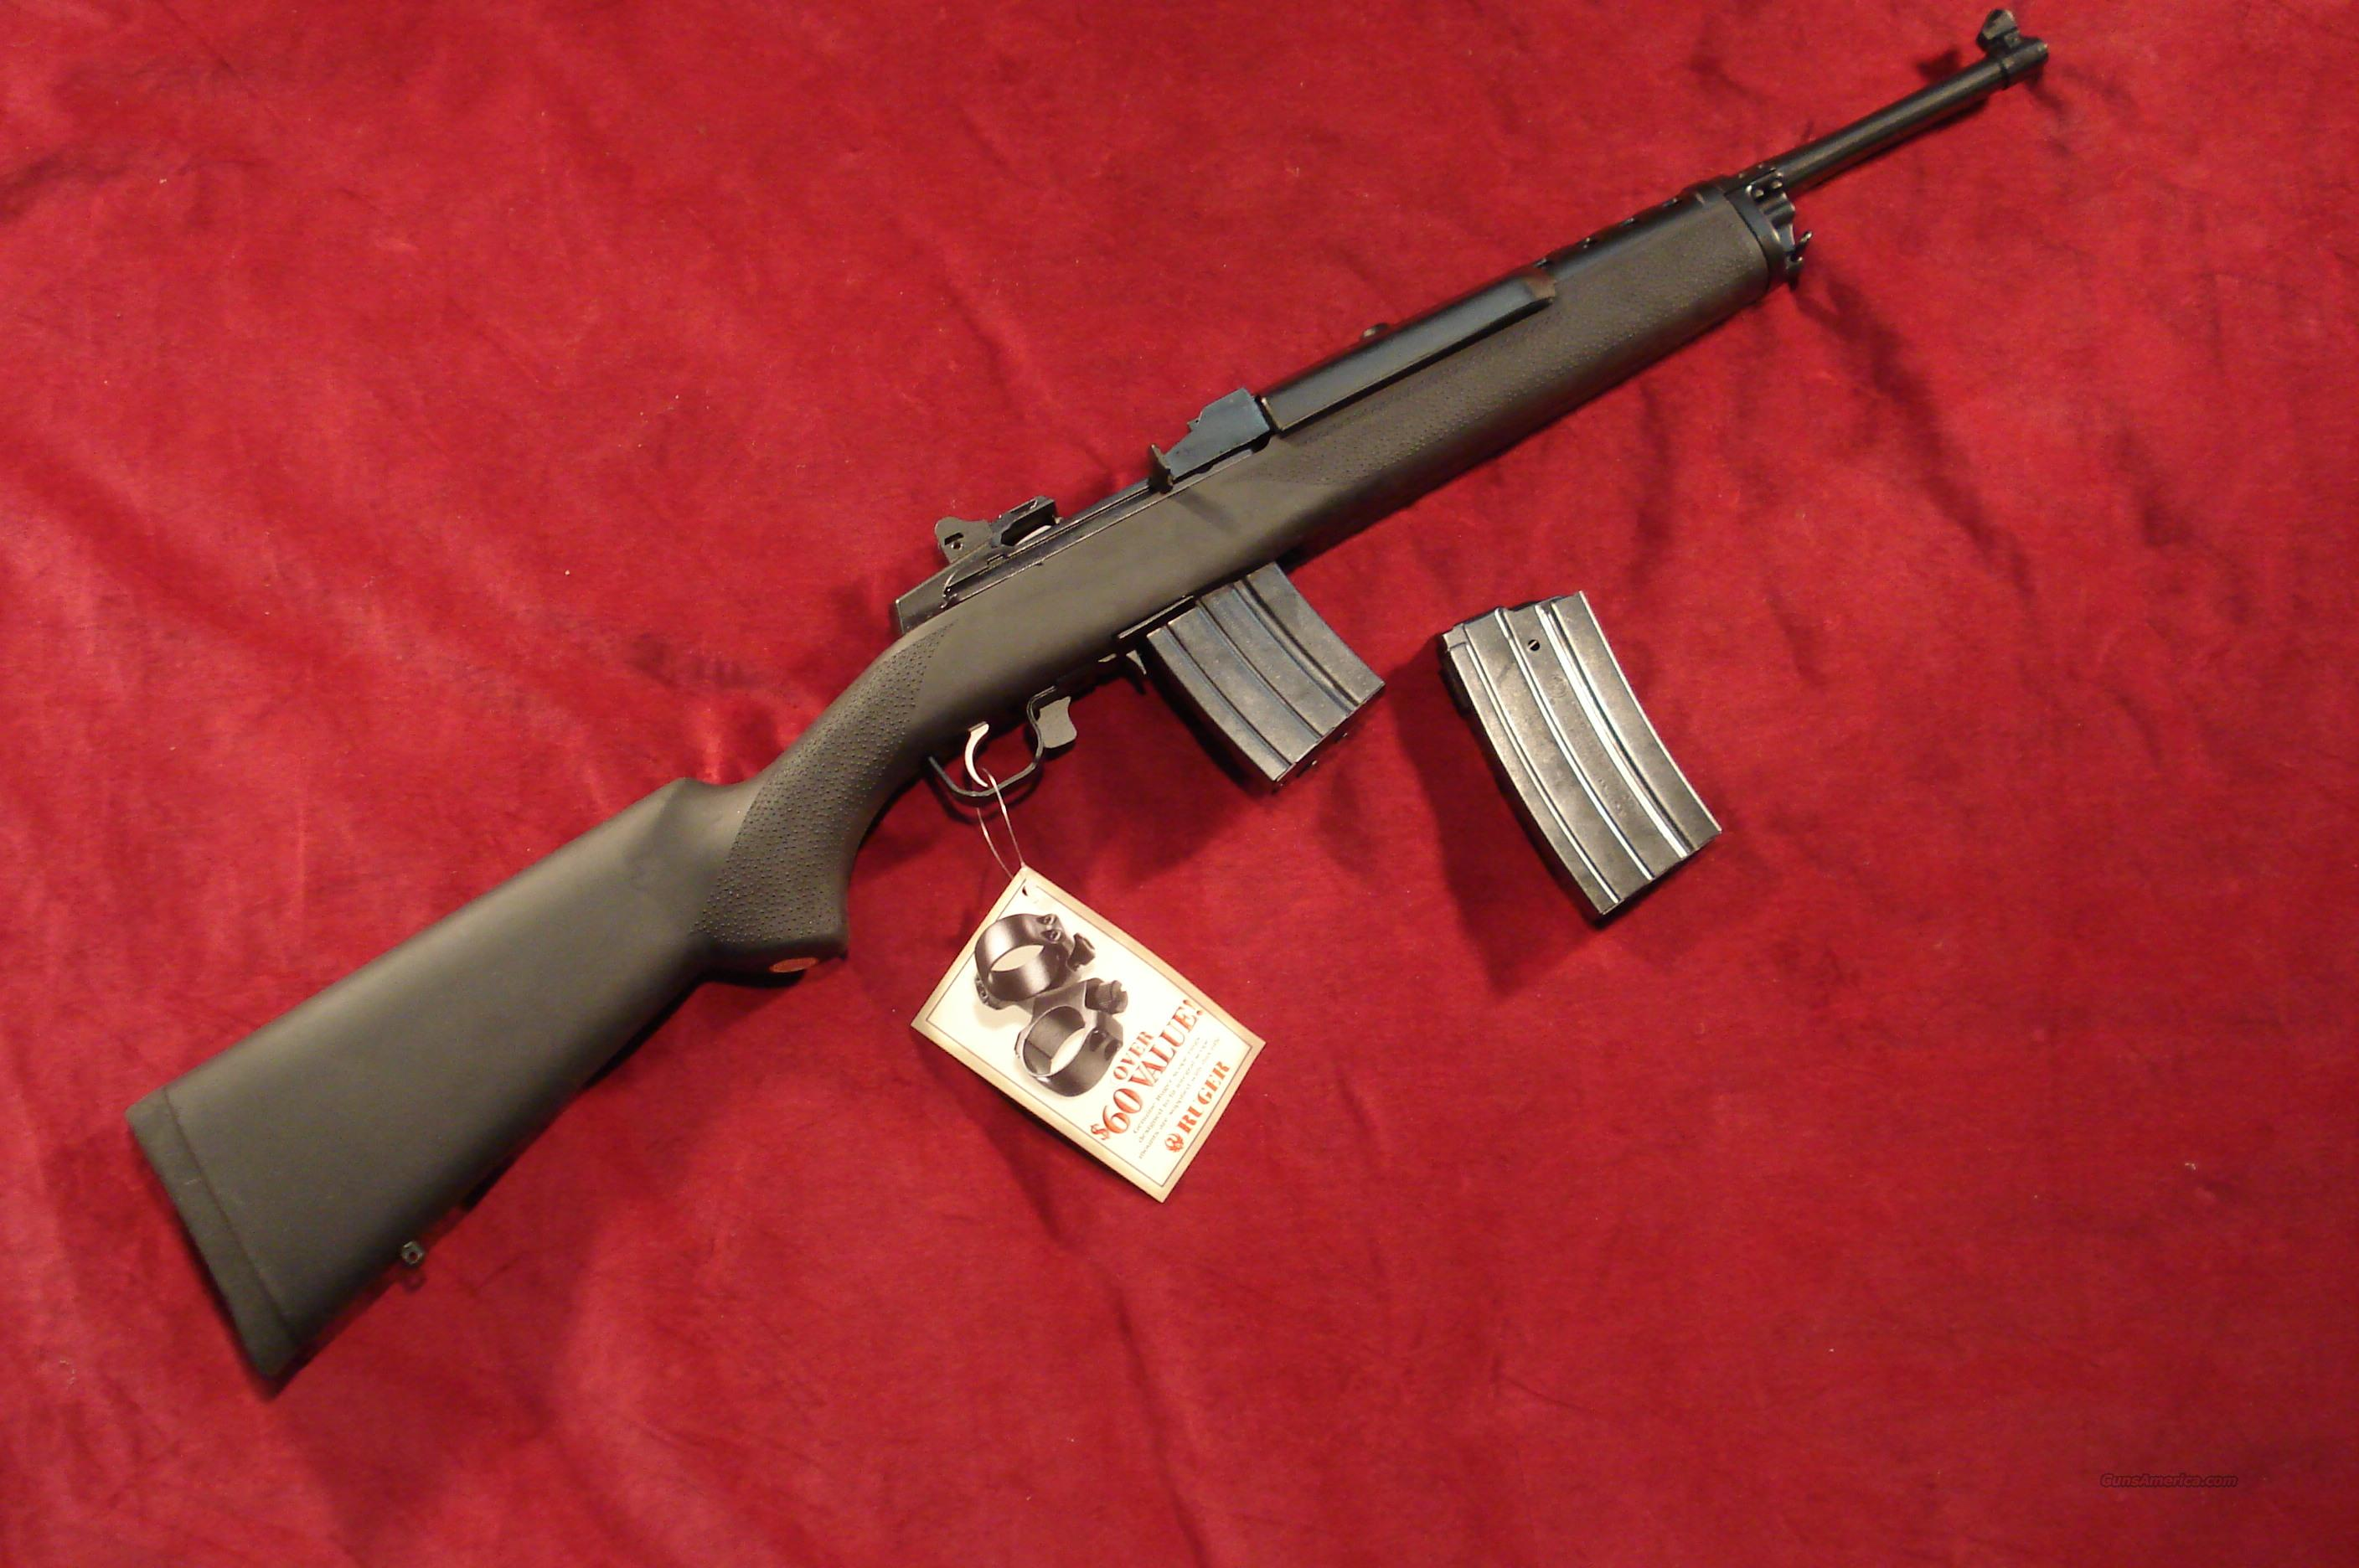 RUGER NRA MINI 14 RANCH RIFLE 223CAL. NEW  Guns > Rifles > Ruger Rifles > Mini-14 Type